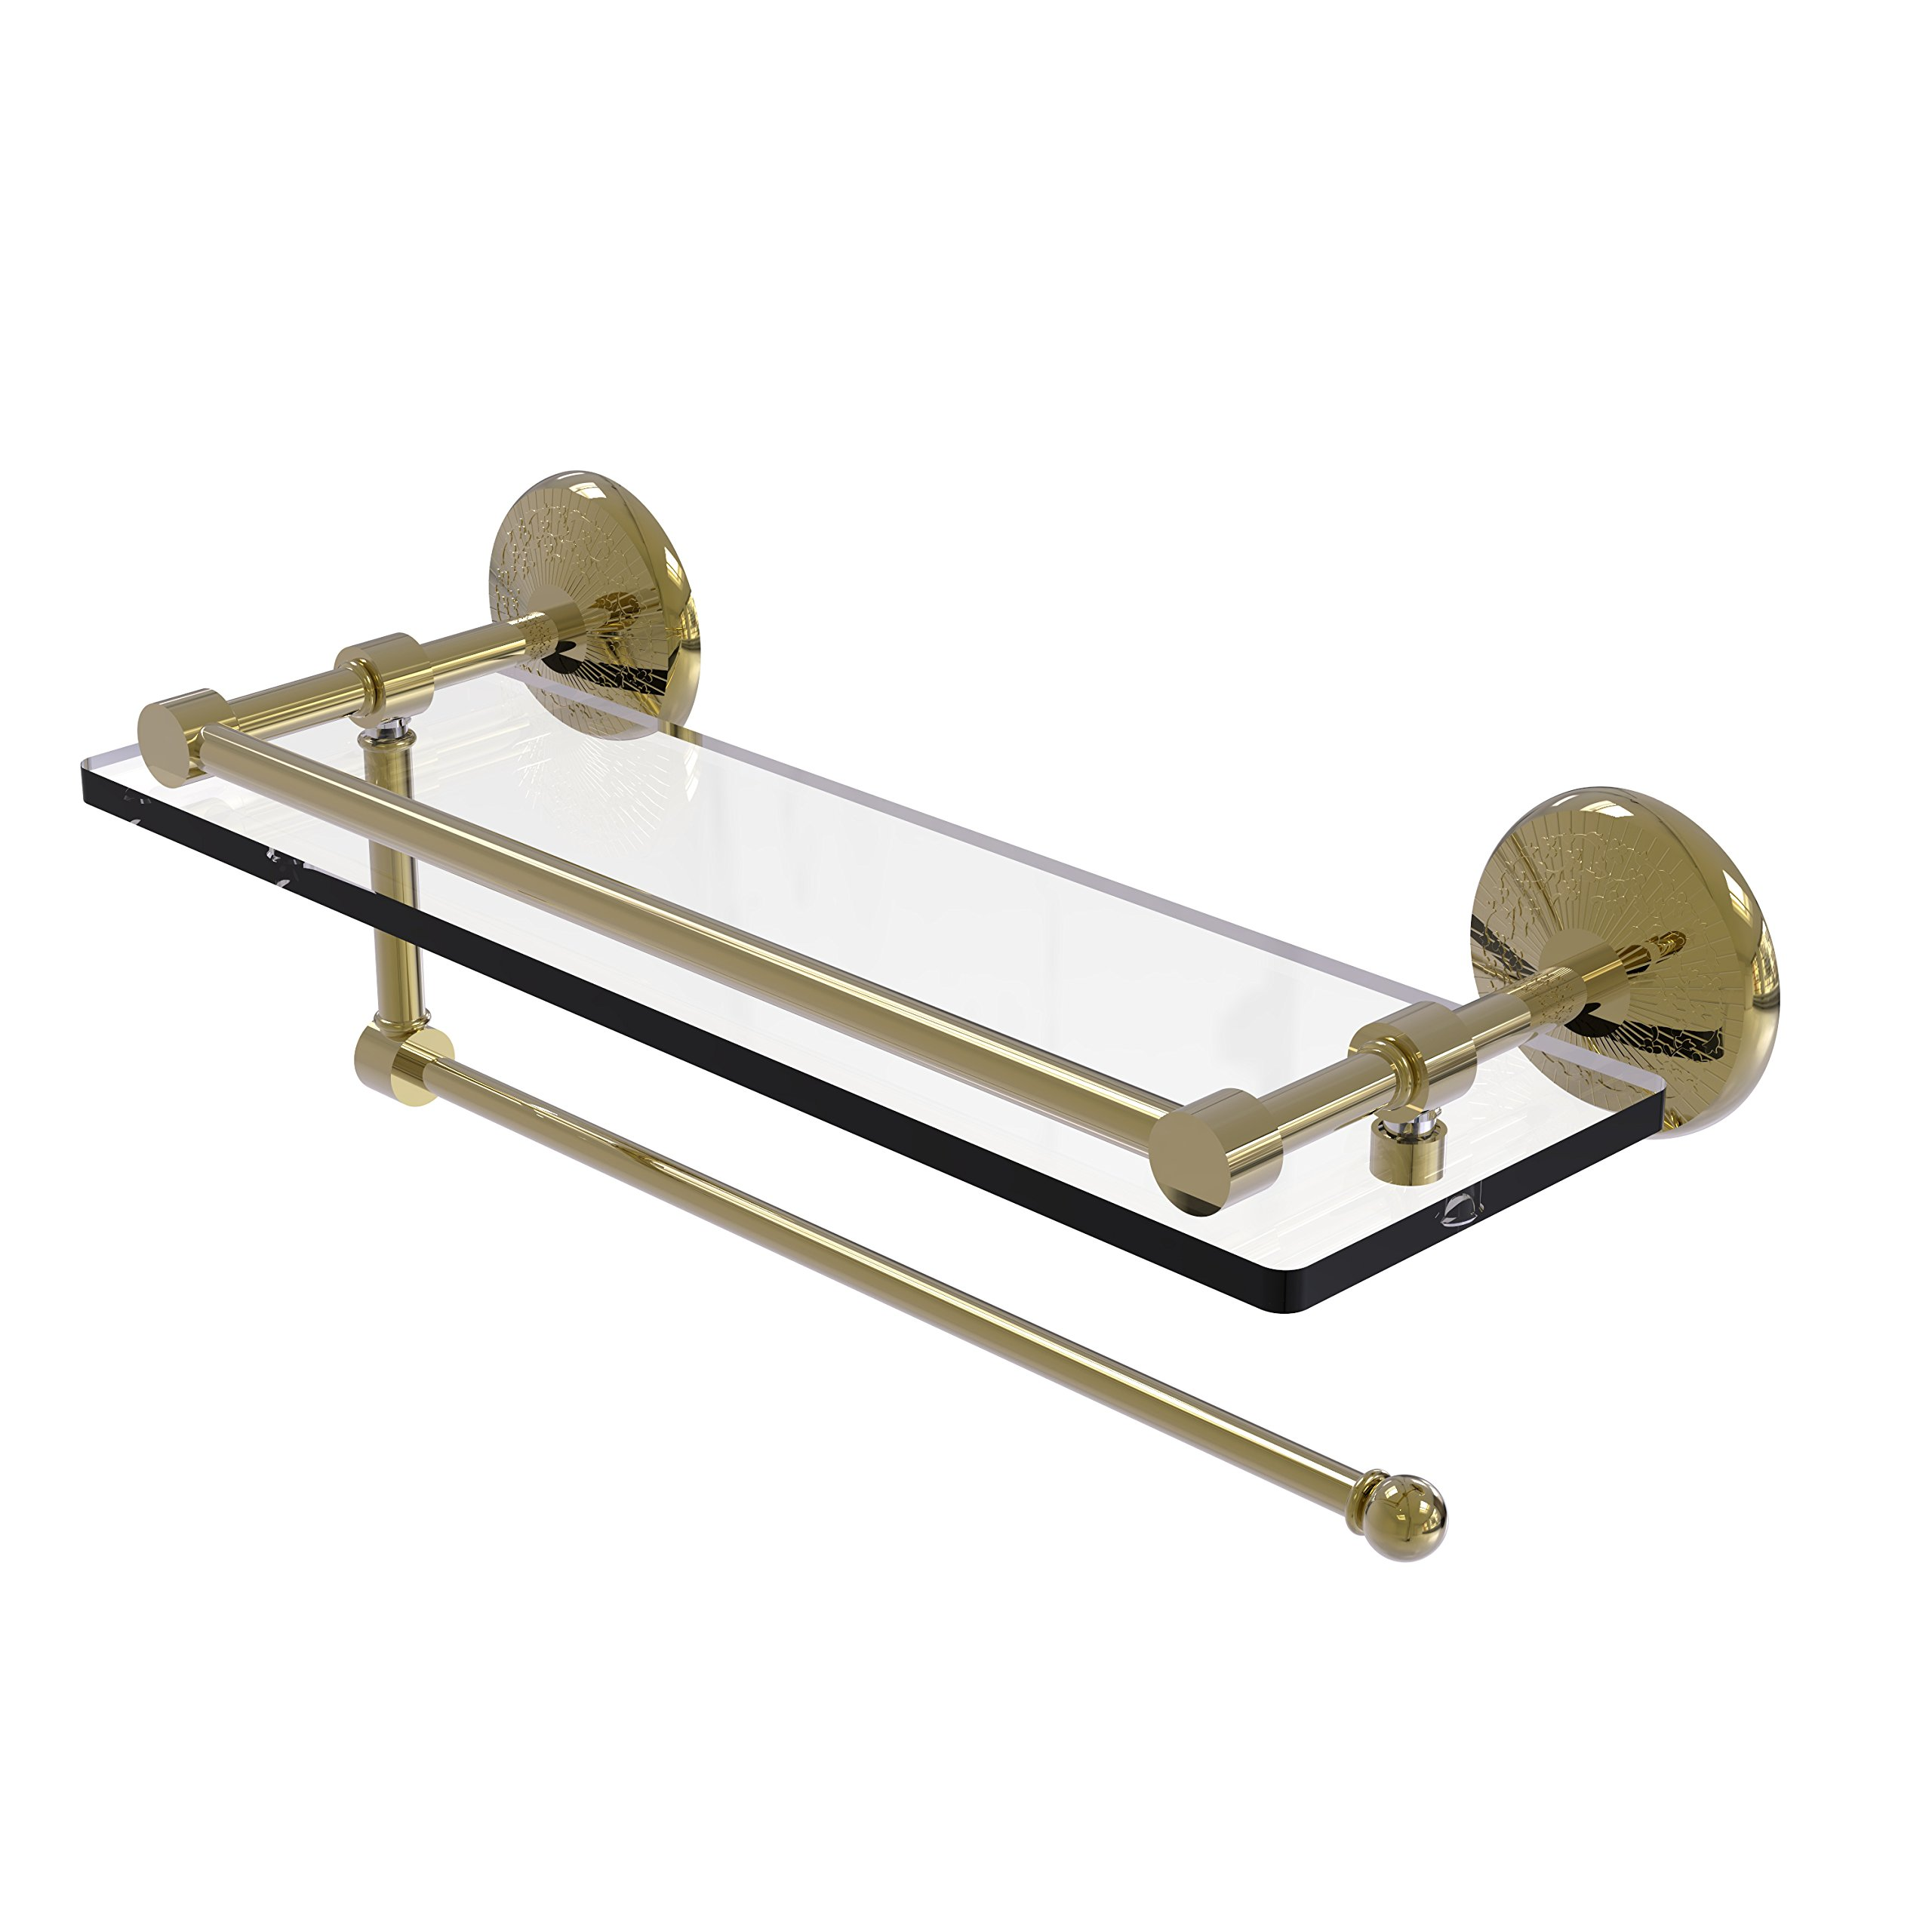 Allied Brass Prestige Monte Carlo Collection Paper Towel Holder with 16 Inch Gallery Glass Shelf PMC-1PT/16-GAL - Unlacquered Brass